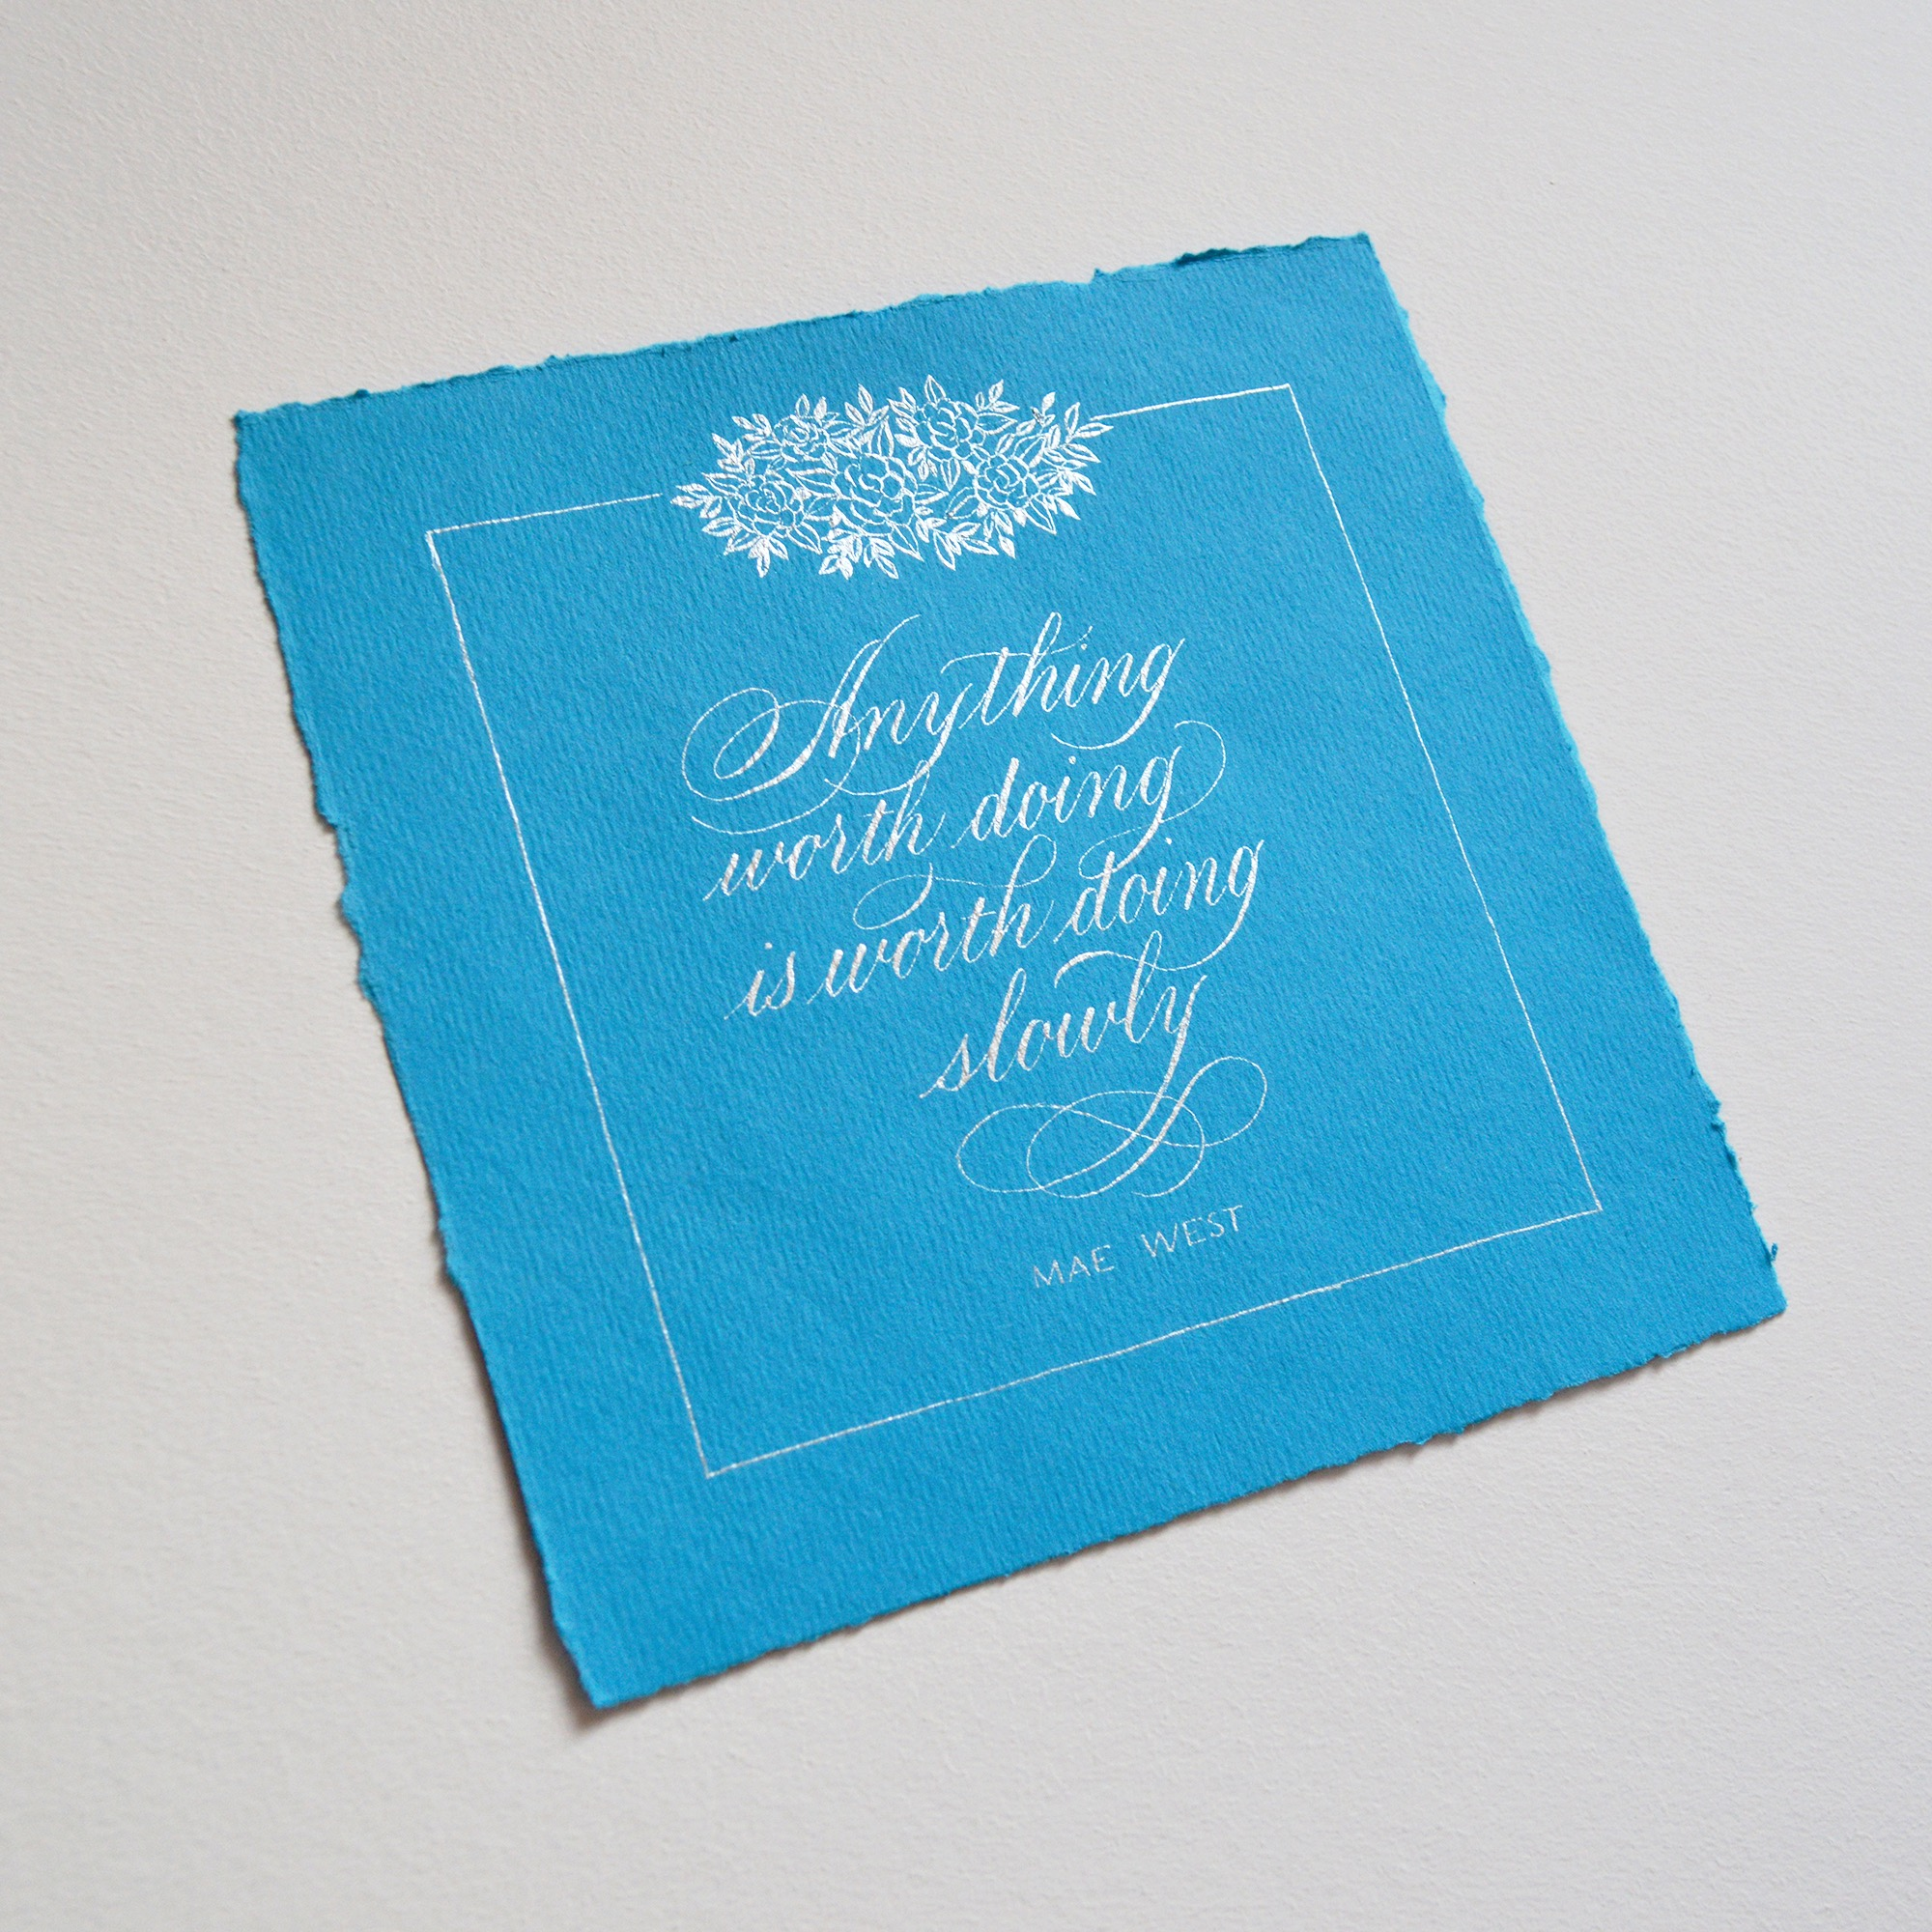 Anything worth doing is worth doing slowly | A quote by Mae West | Calligraphy by Type and Graphics Lab